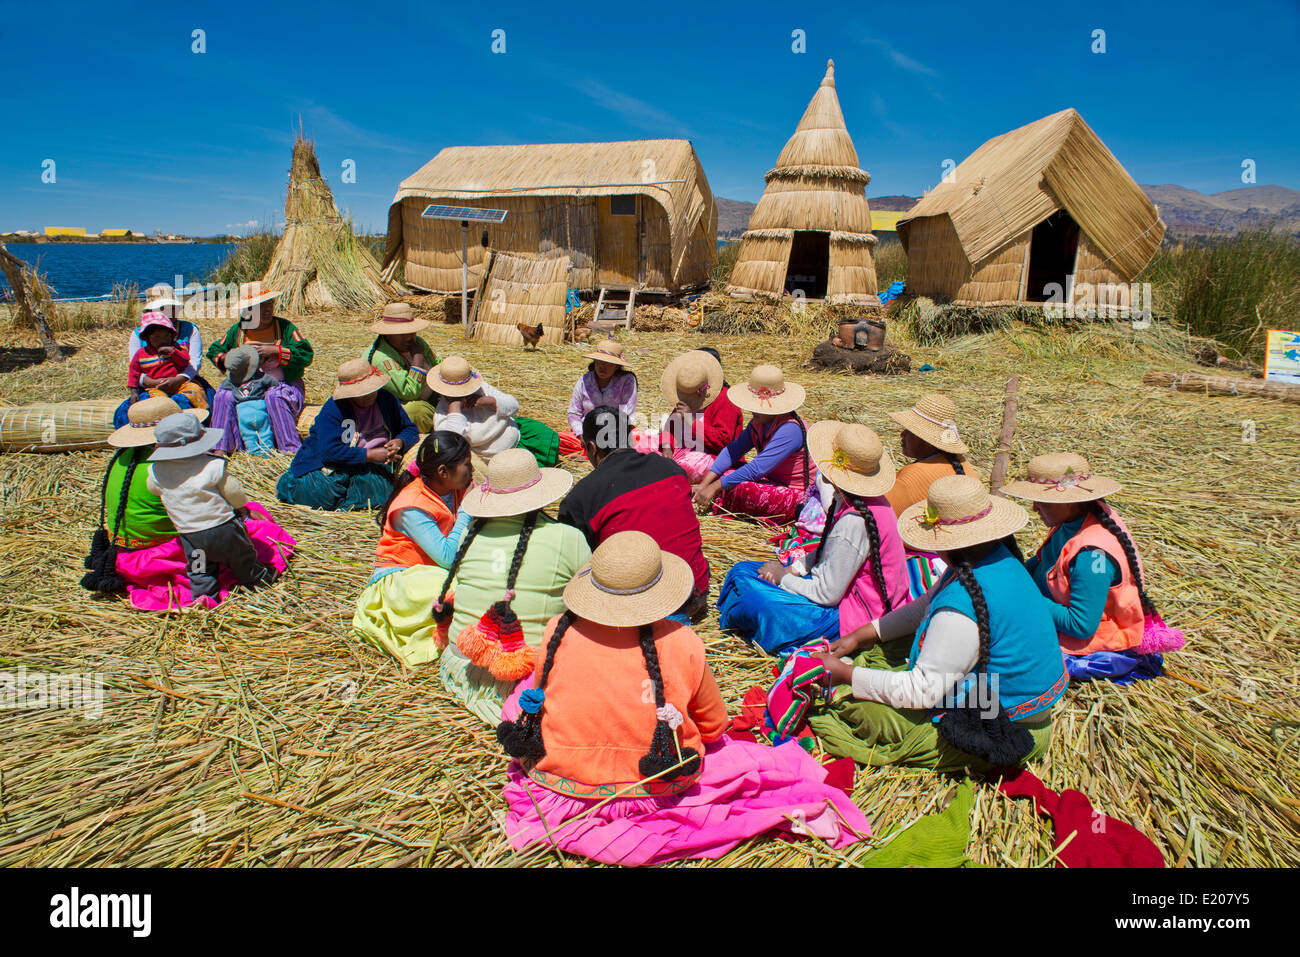 Women of the Uro Indians sit in front of typical reed huts, floating islands made of totora reeds, Lake Titicaca, - Stock Image